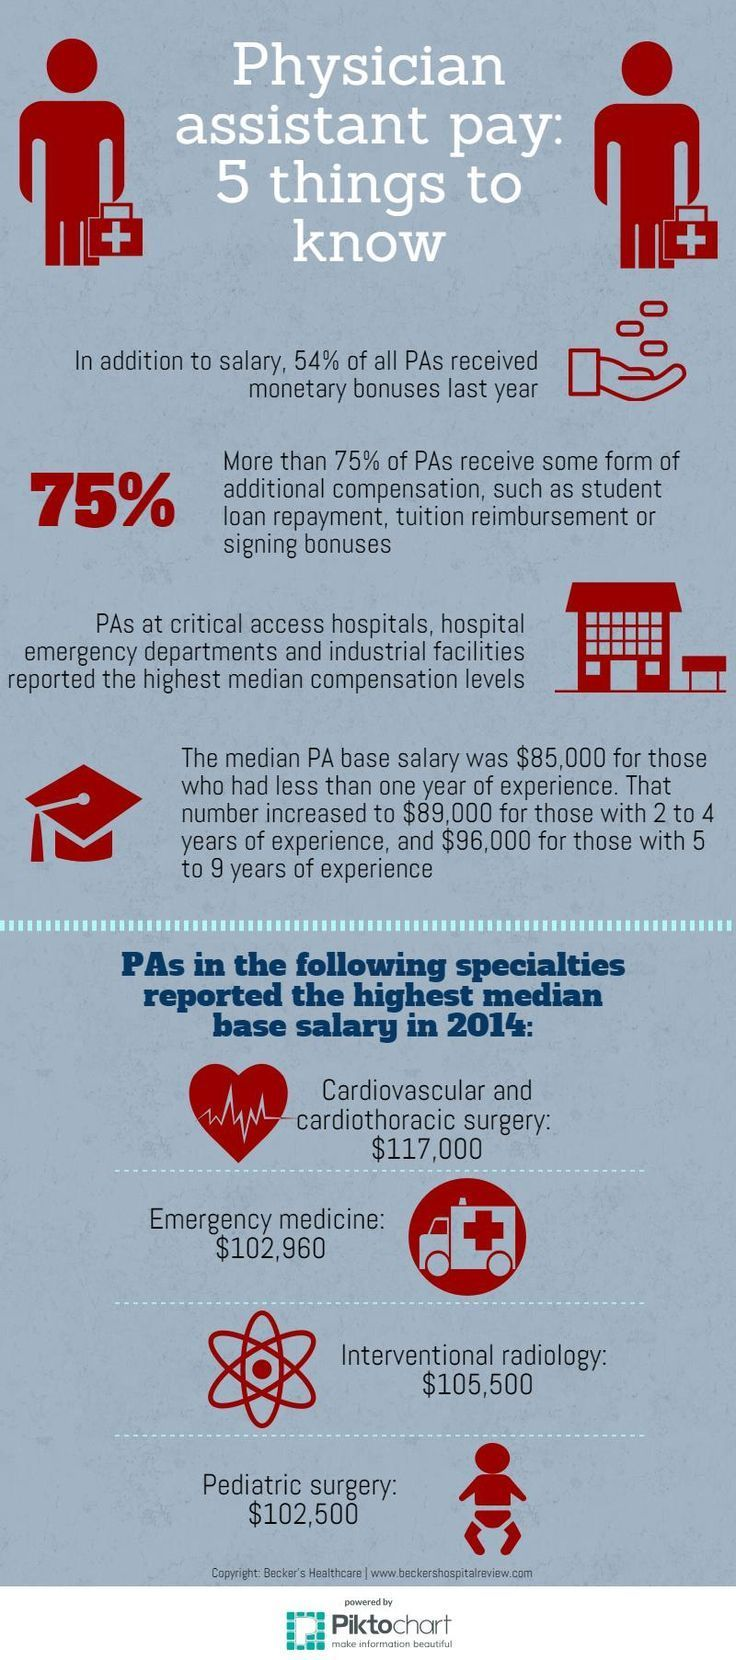 5 things to know about physician assistant pay in 2020